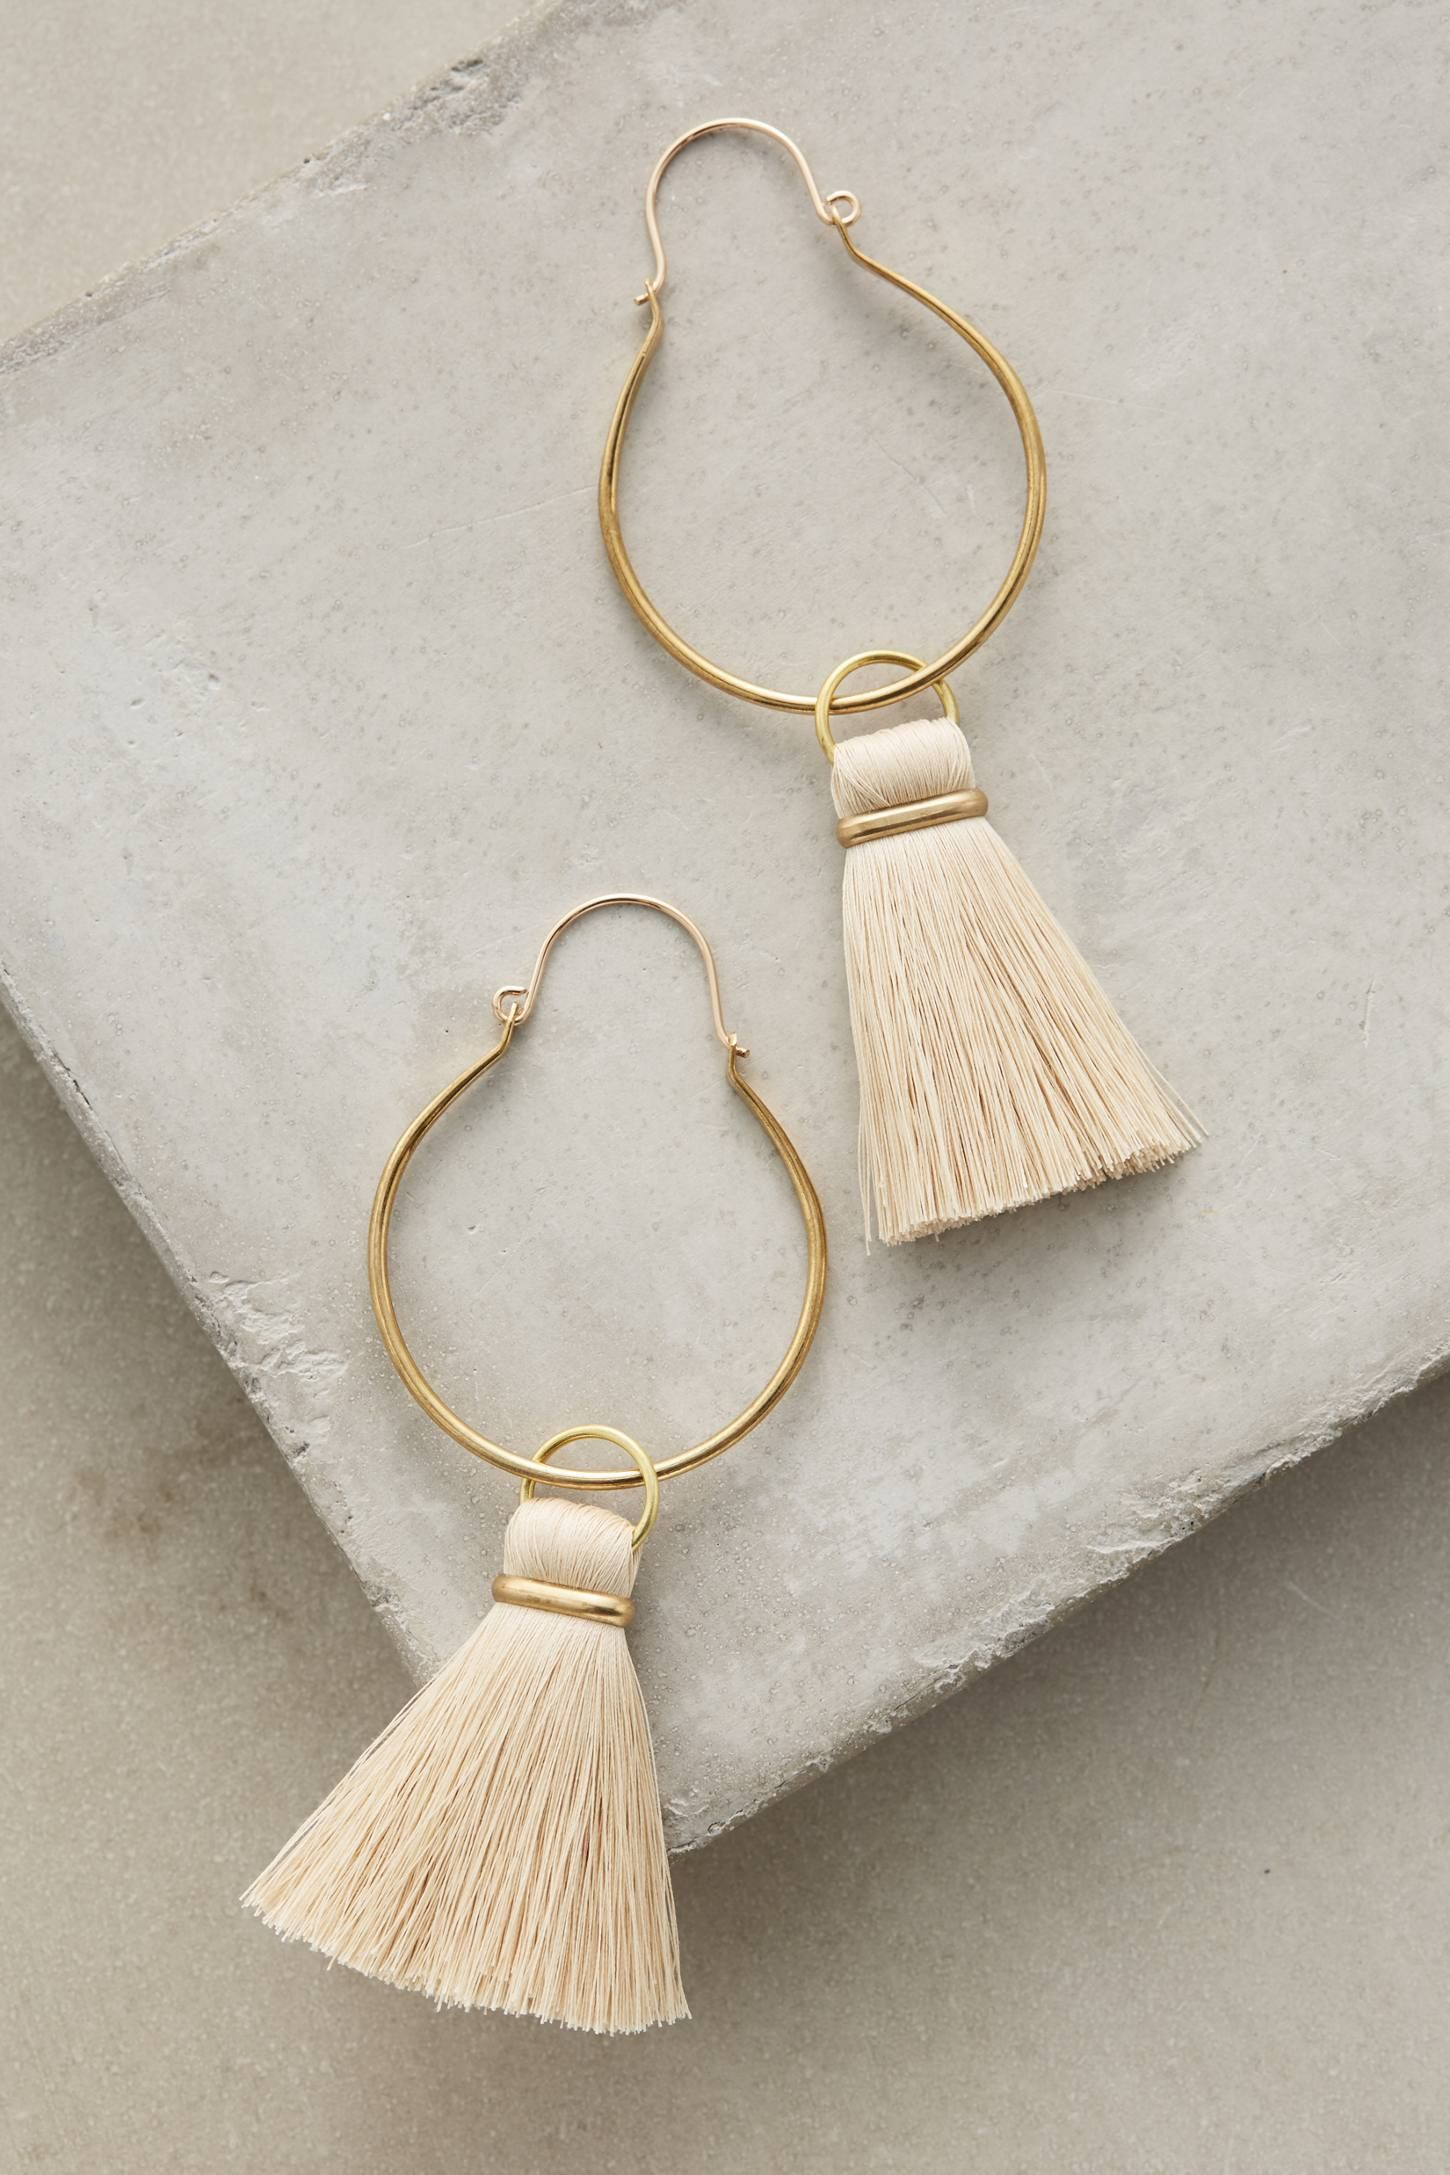 the daily hunt | tassels, jewel and bling